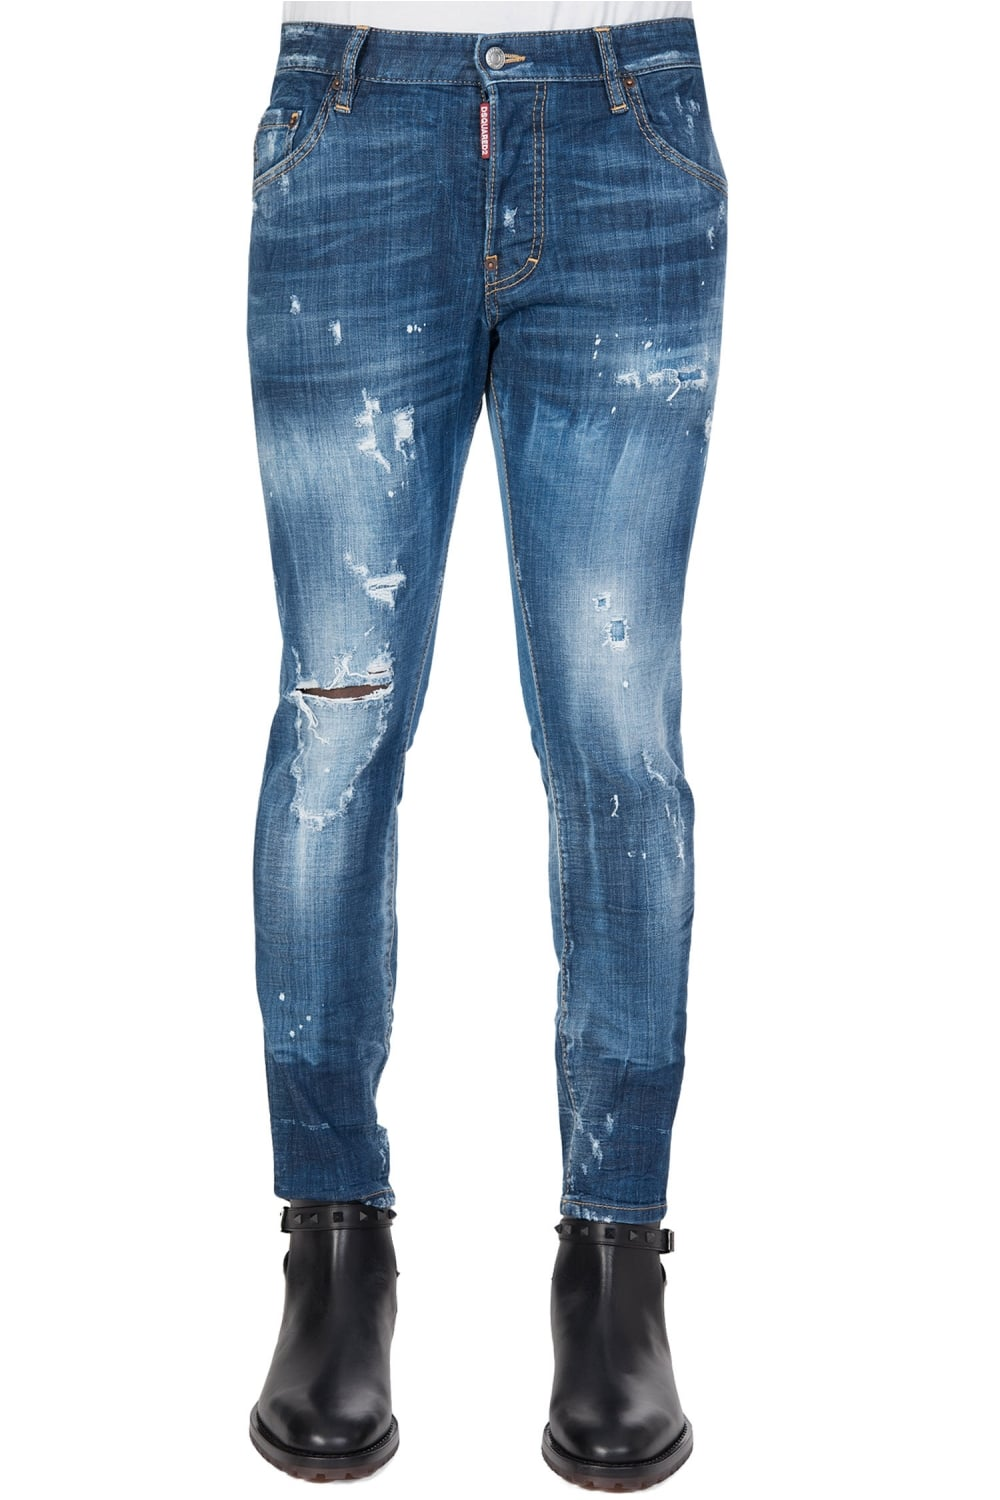 6a33b8ad Dsquared Skater Jeans Blue